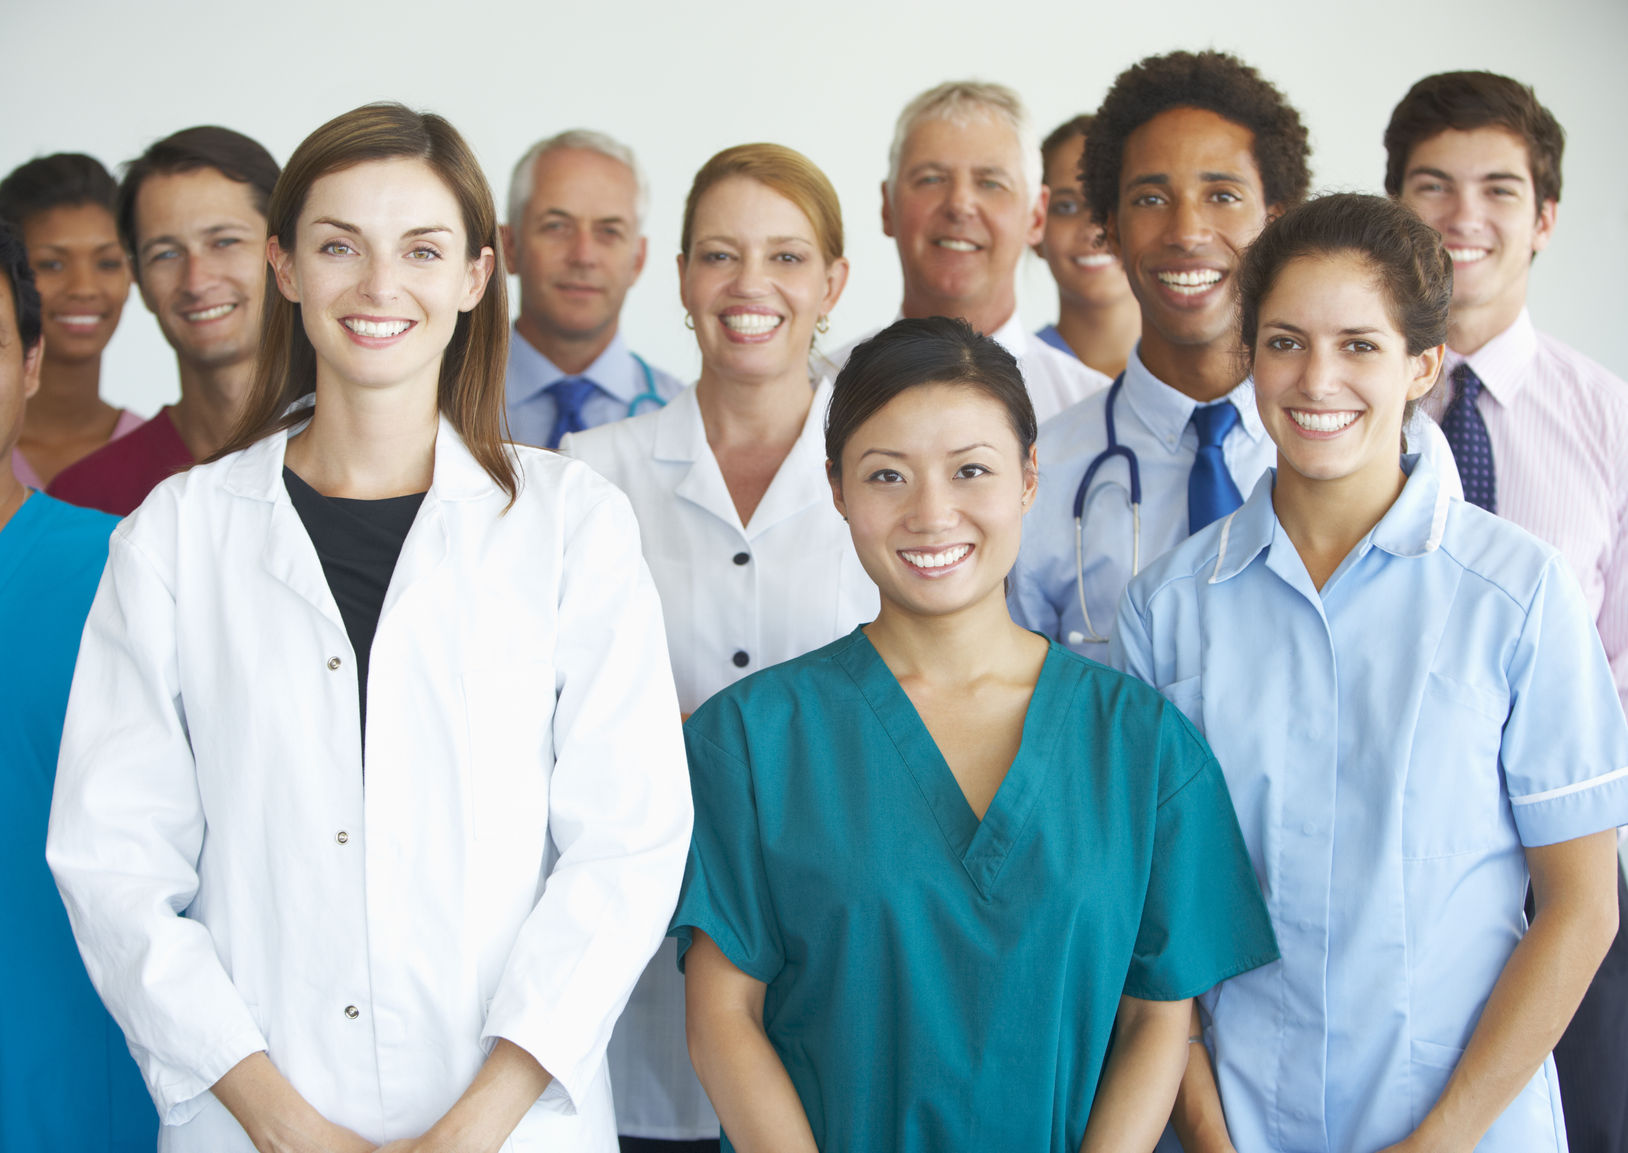 Work in Healthcare Without a Medical Degree